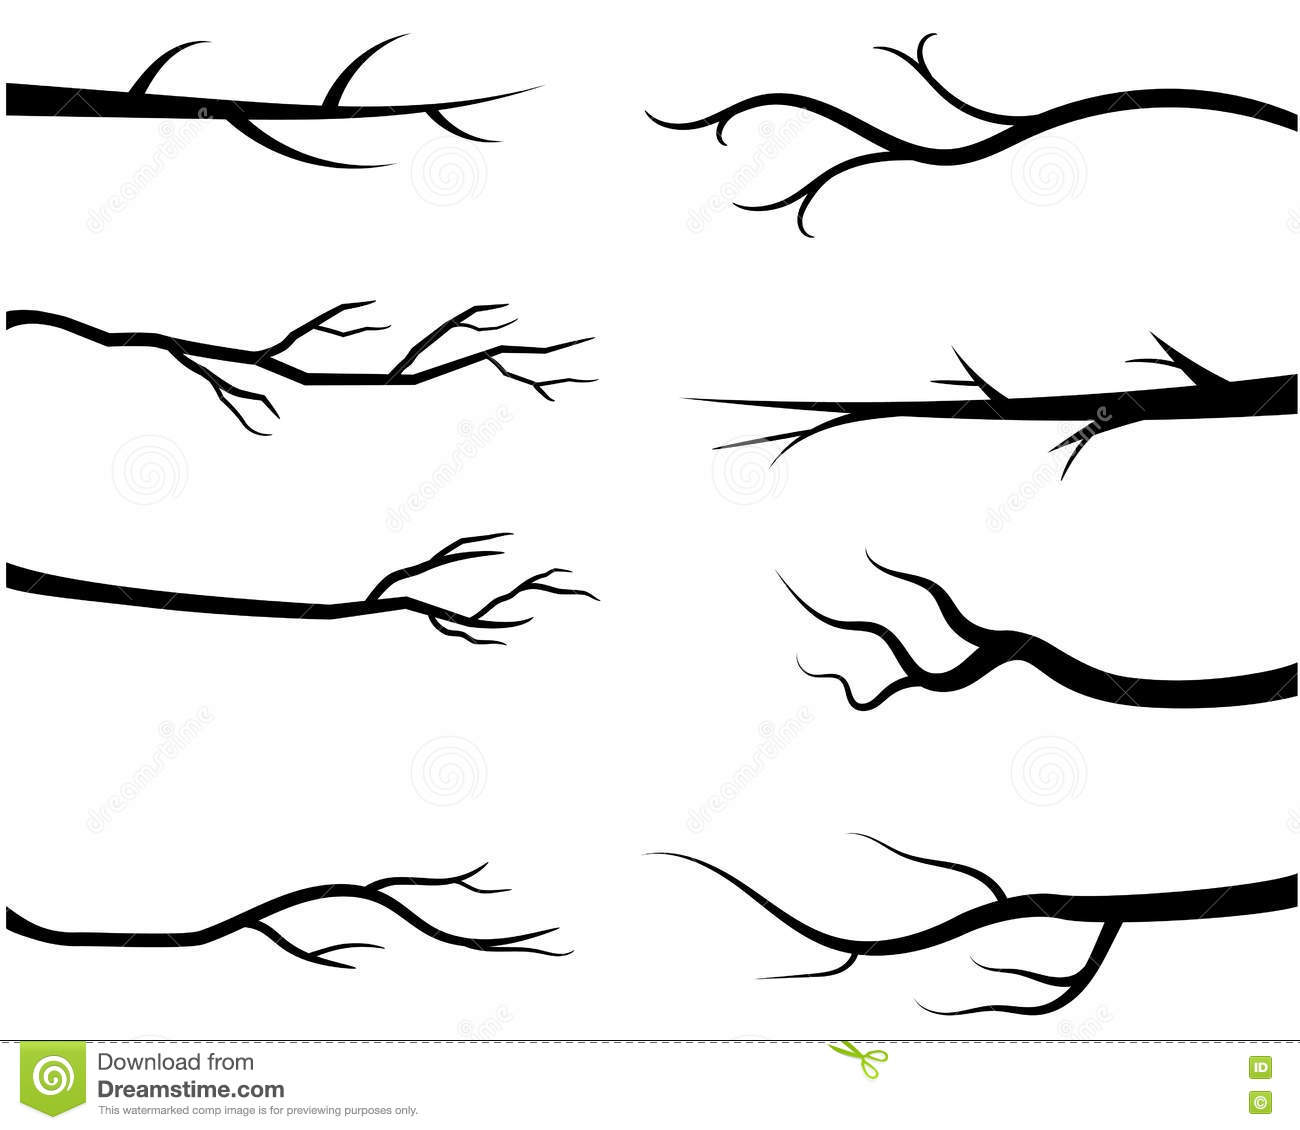 Tree Branches Diagram